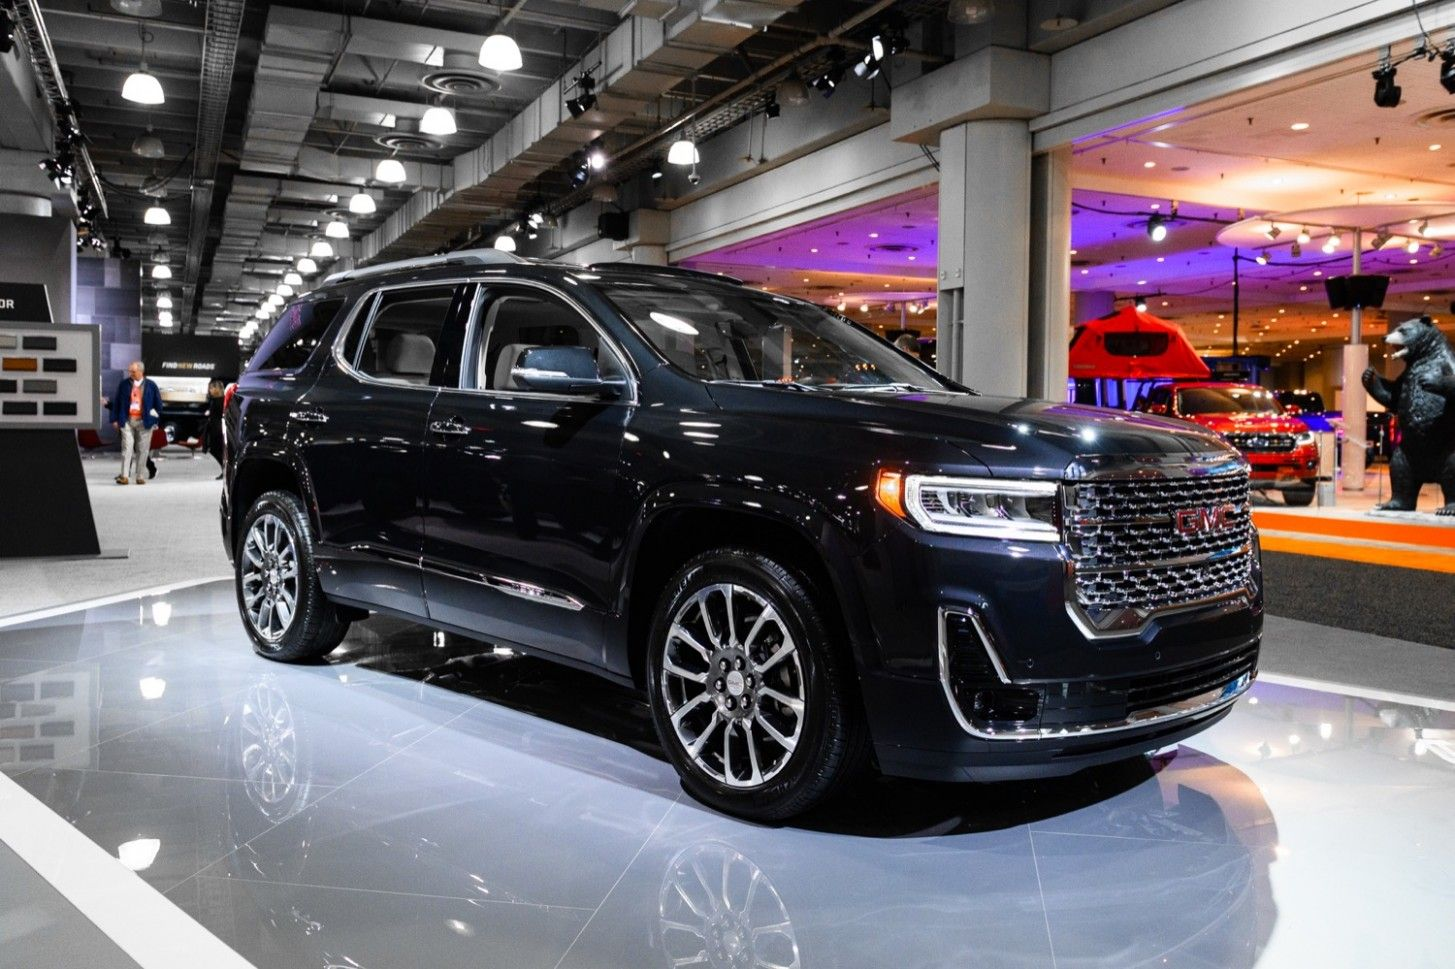 2020 Gmc Acadia Denali Wallpaper In 2020 Acadia Denali Gmc Mid